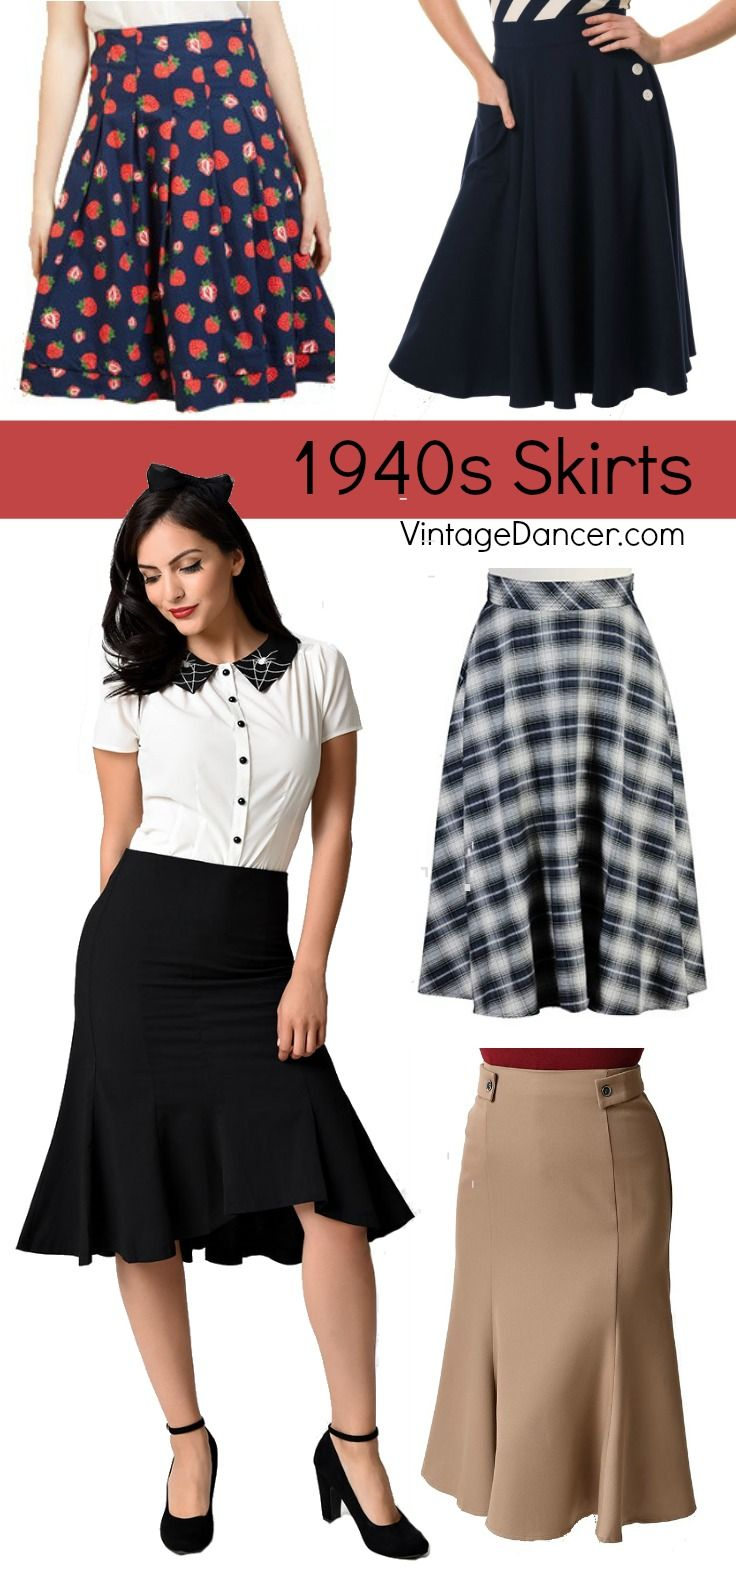 a324f73a635 1940s Skirt History  A-Line Classics to Summer Dirndl Skirts